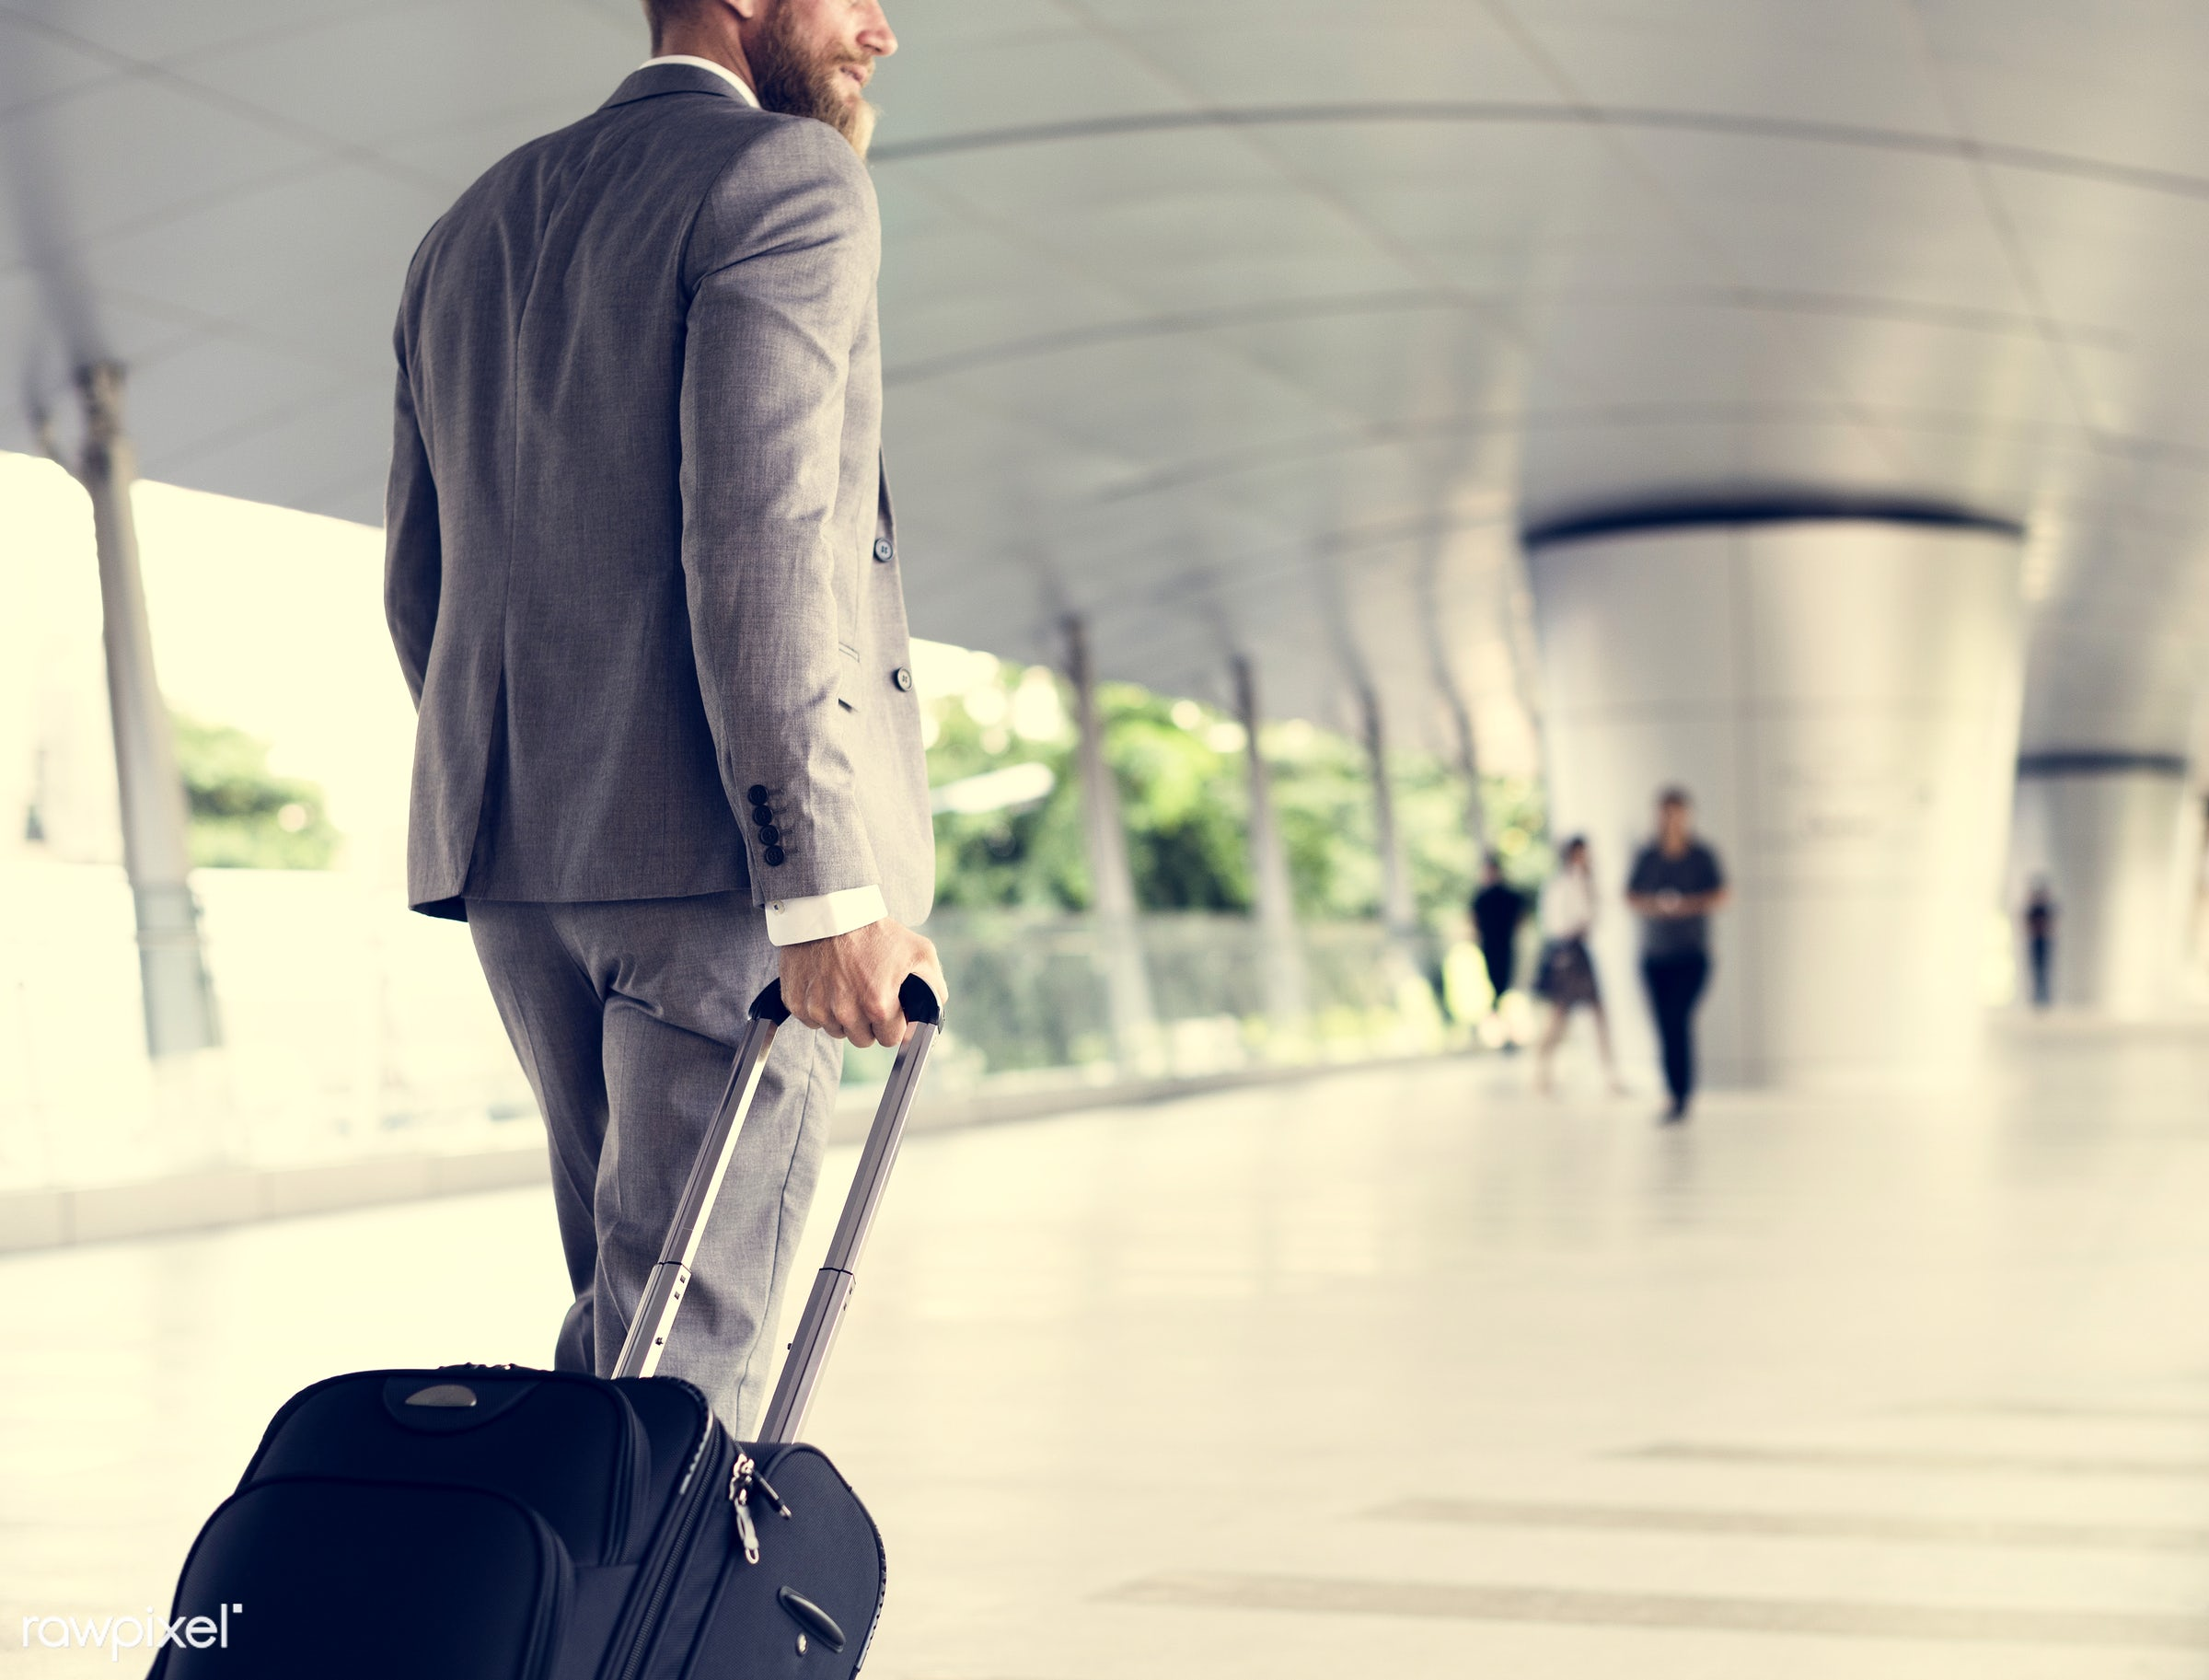 business trip, expression, update, face, person, suit and tie, white collar worker, indoors, luggage, busy, travel, wait,...